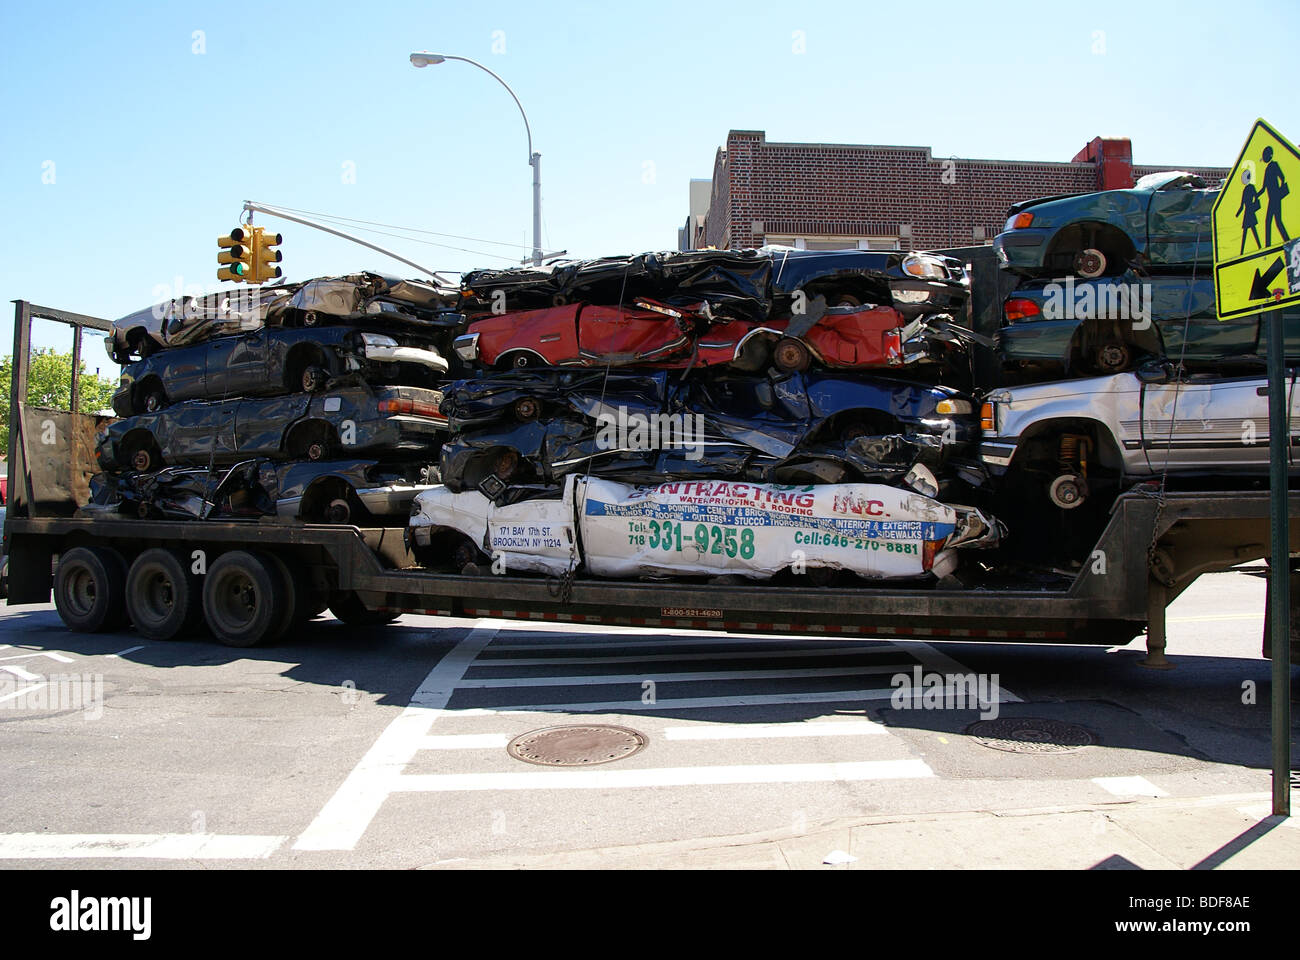 Cash For Clunkers >> Car wrecks are being transported Stock Photo, Royalty Free Image: 25536742 - Alamy